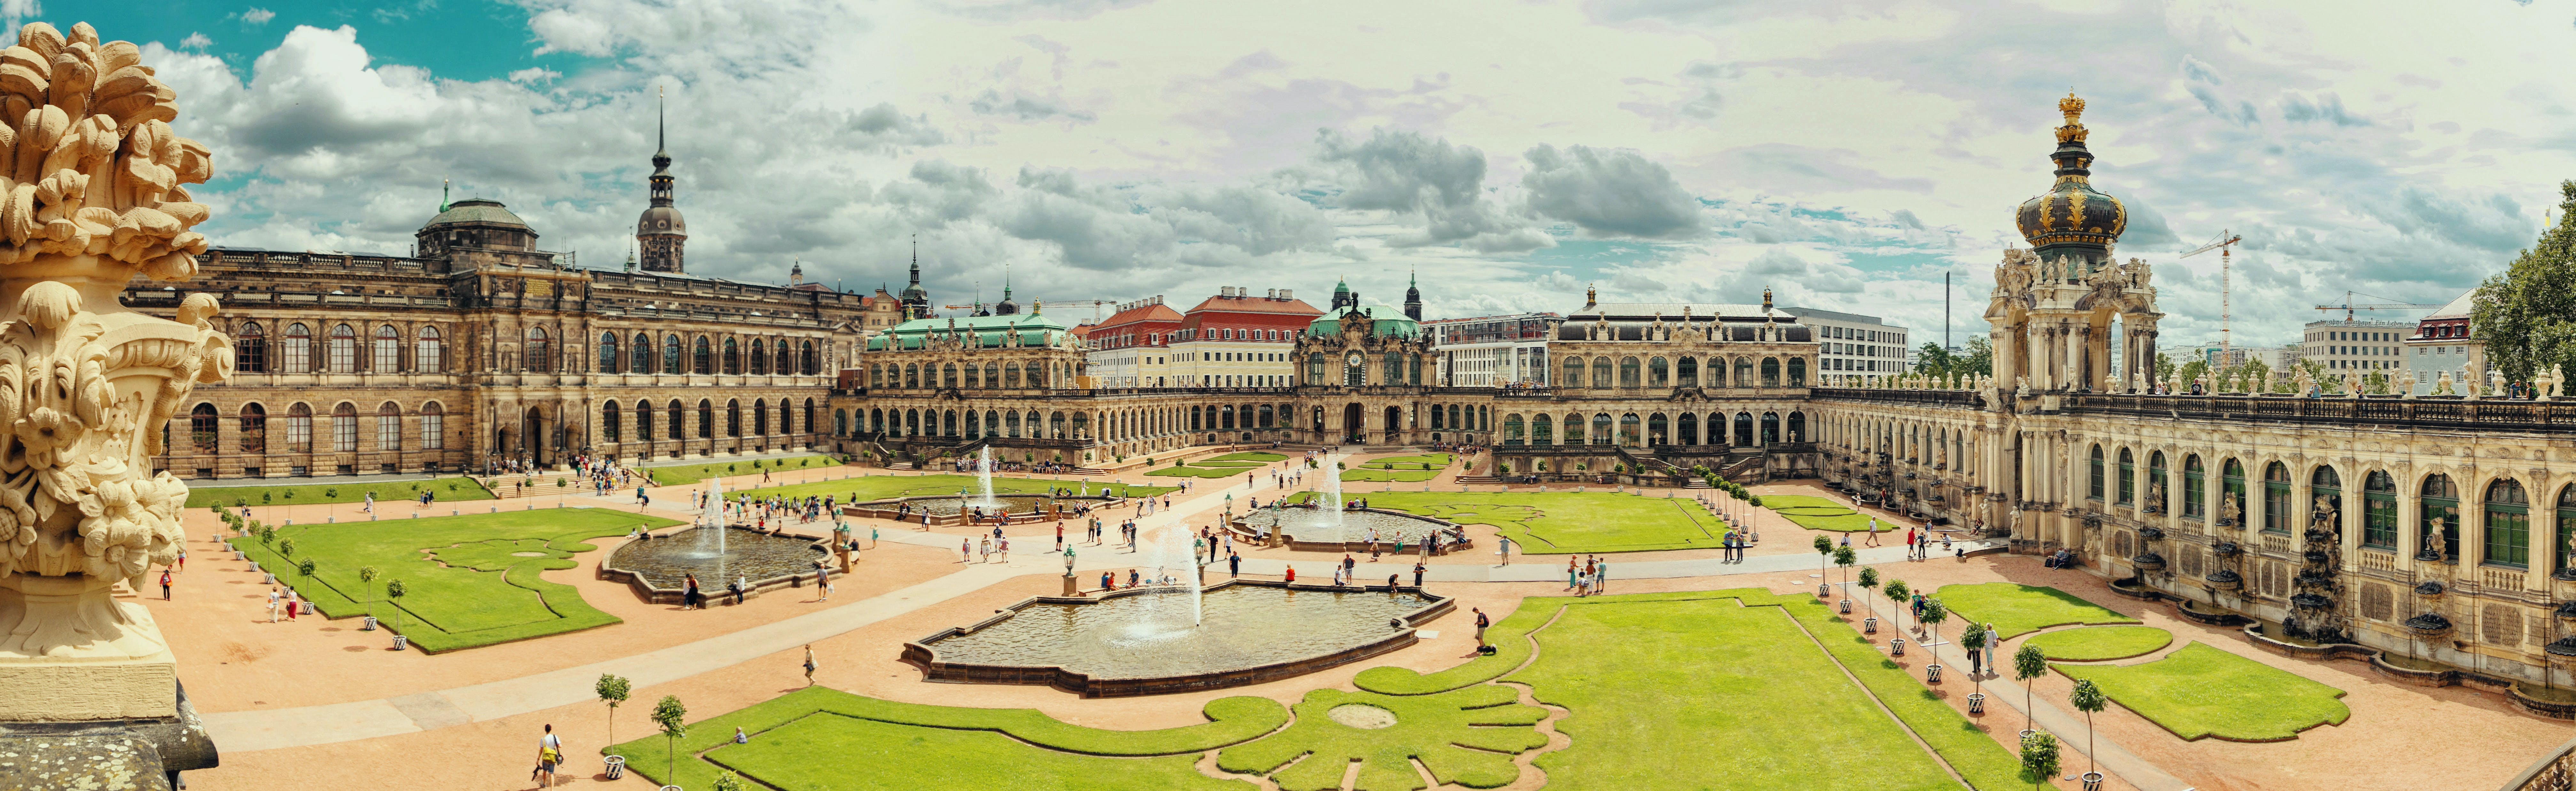 Full Day Dresden Trip With Tour Of Zwinger From Prague Musement